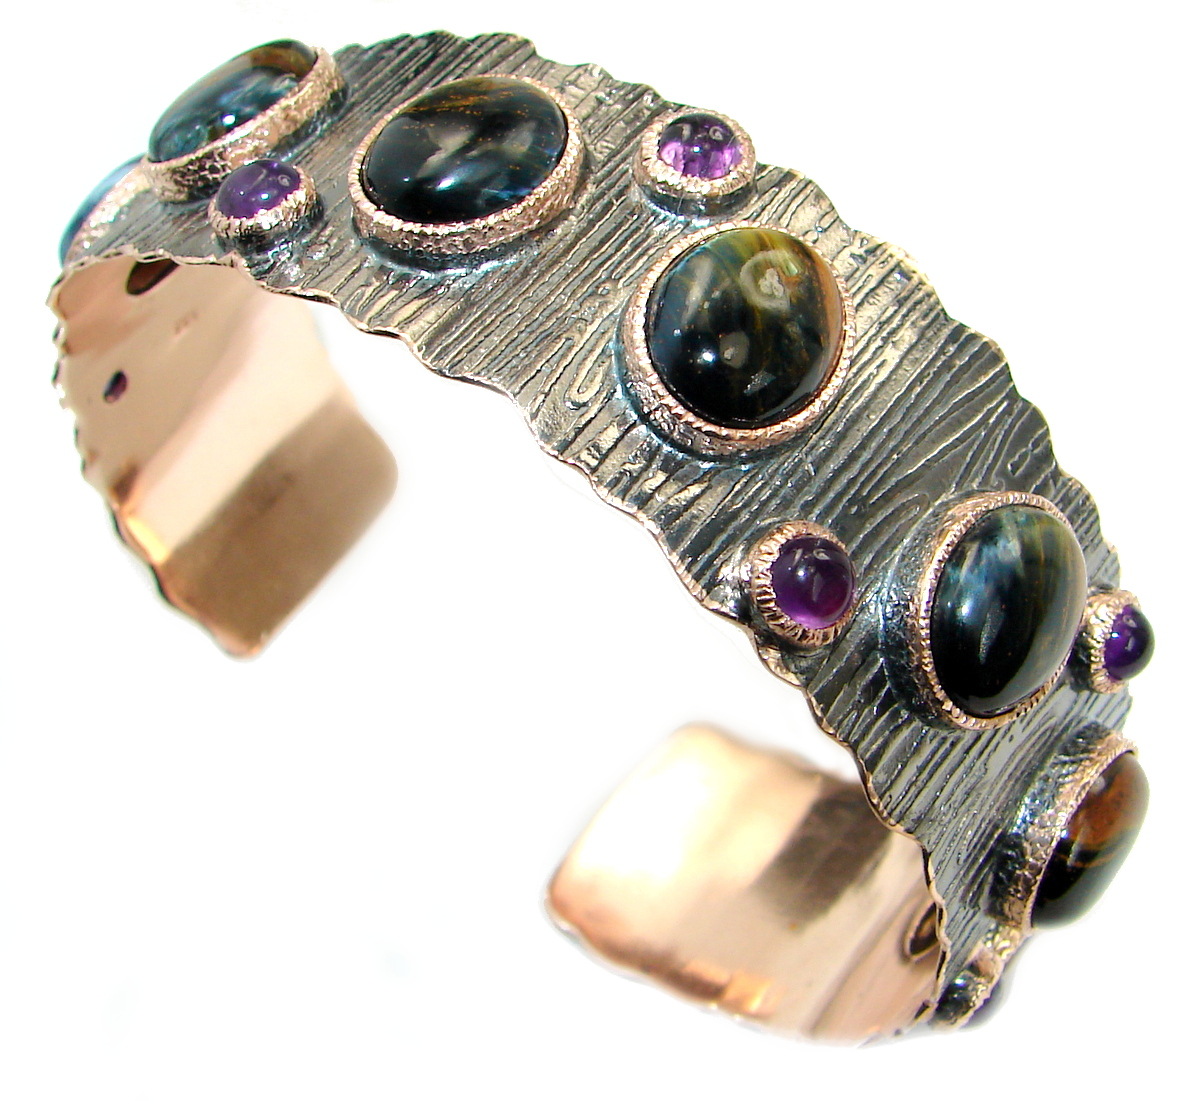 Simply Gorgeous Golden Tigers Eye Rhodium Gold over .925 Sterling Silver Bracelet / Cuff